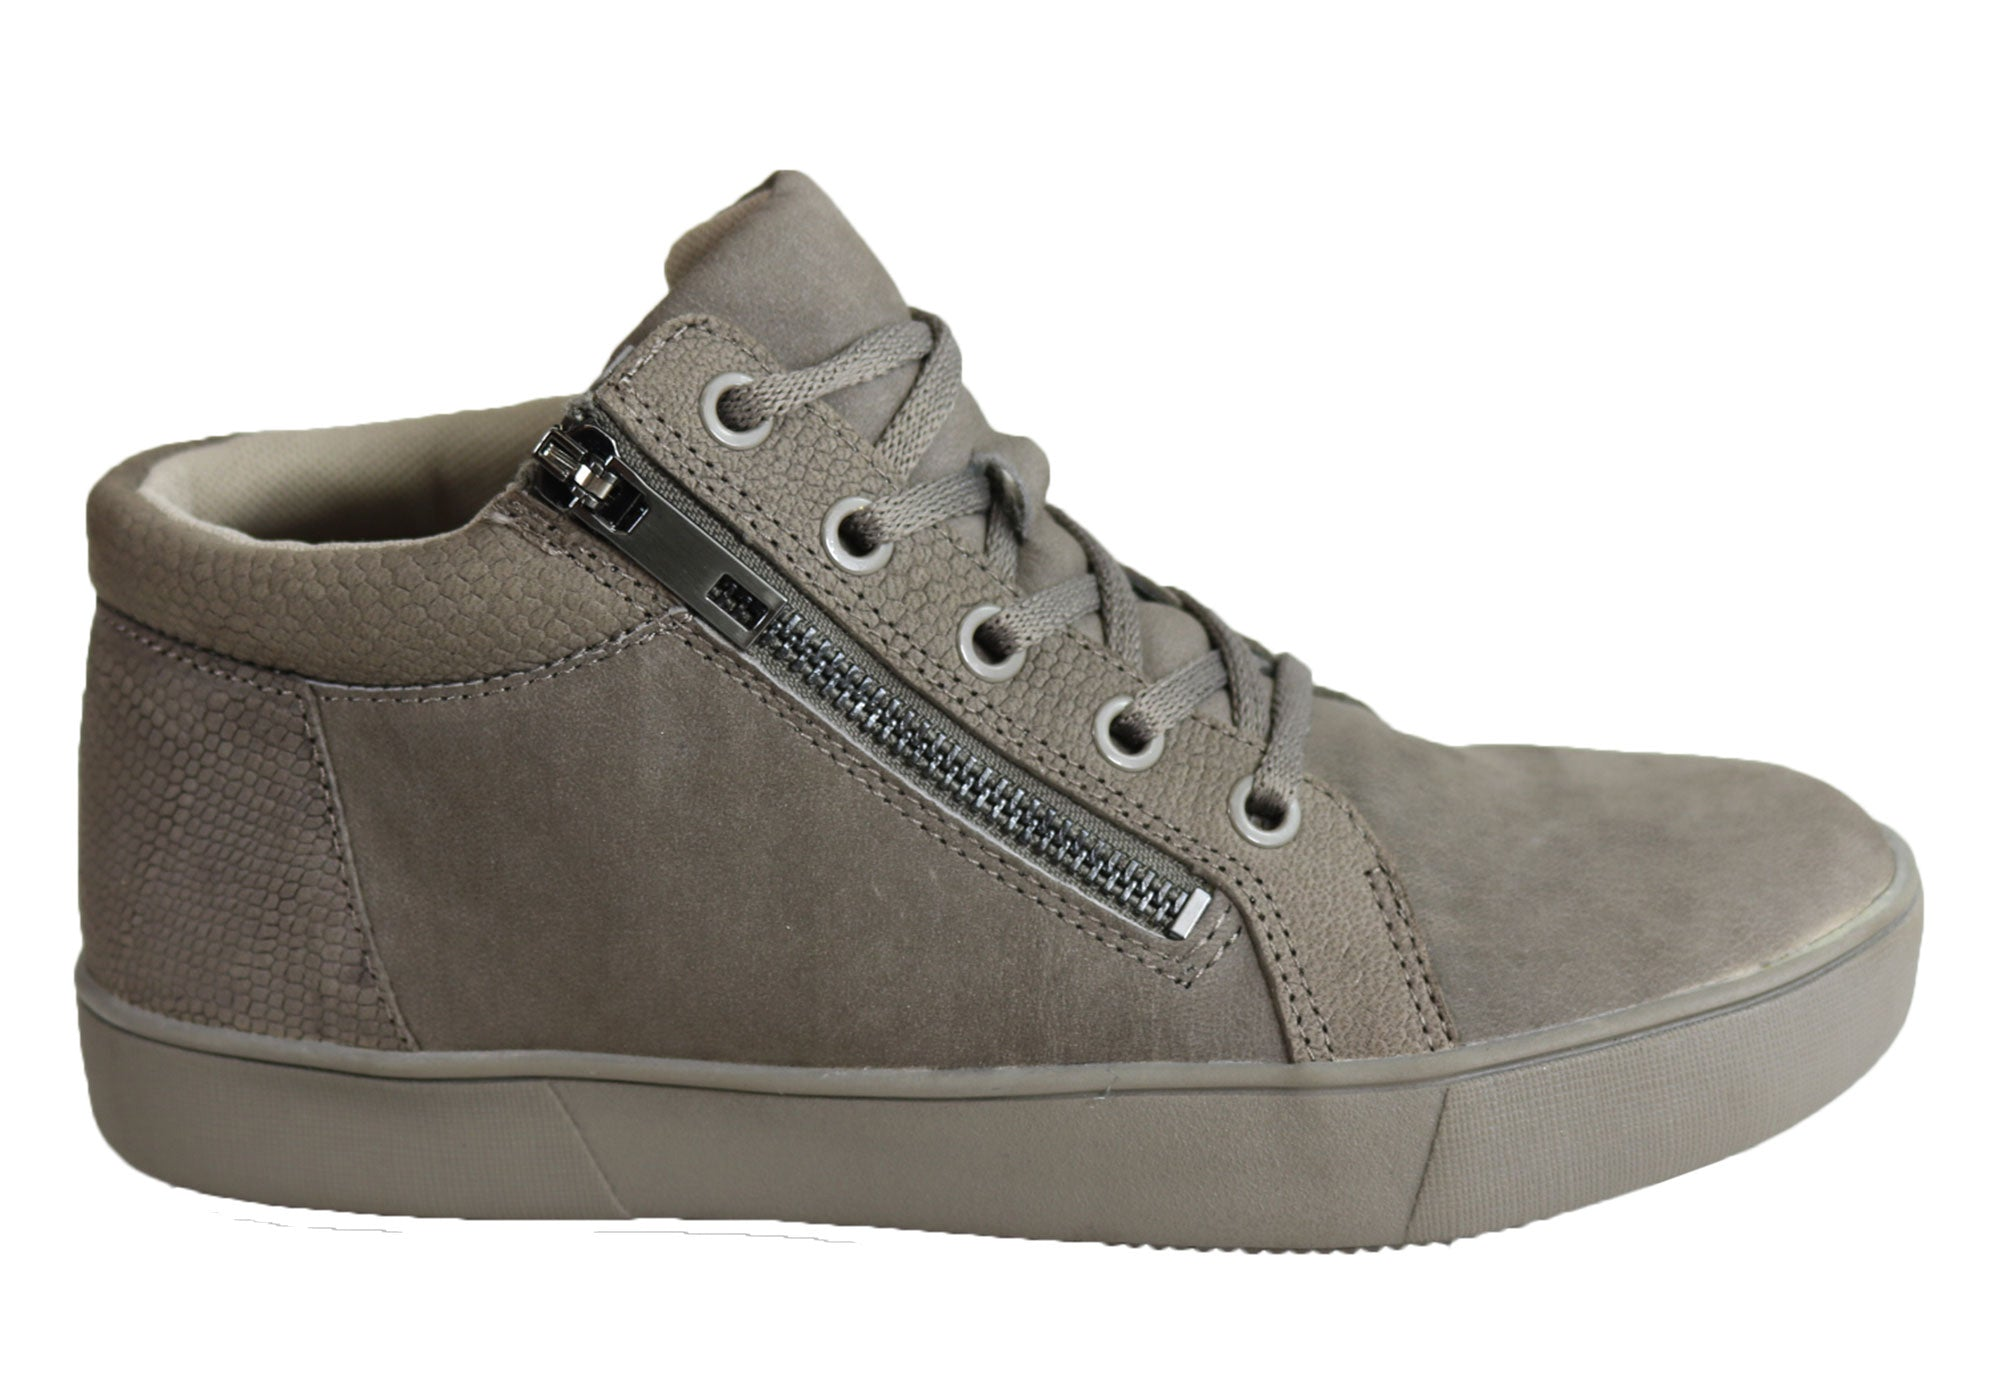 3665da80ea5c Home Naturalizer Motley Womens Comfortable Leather Lace Up Flat Ankle Boots.  Modern Grey ...